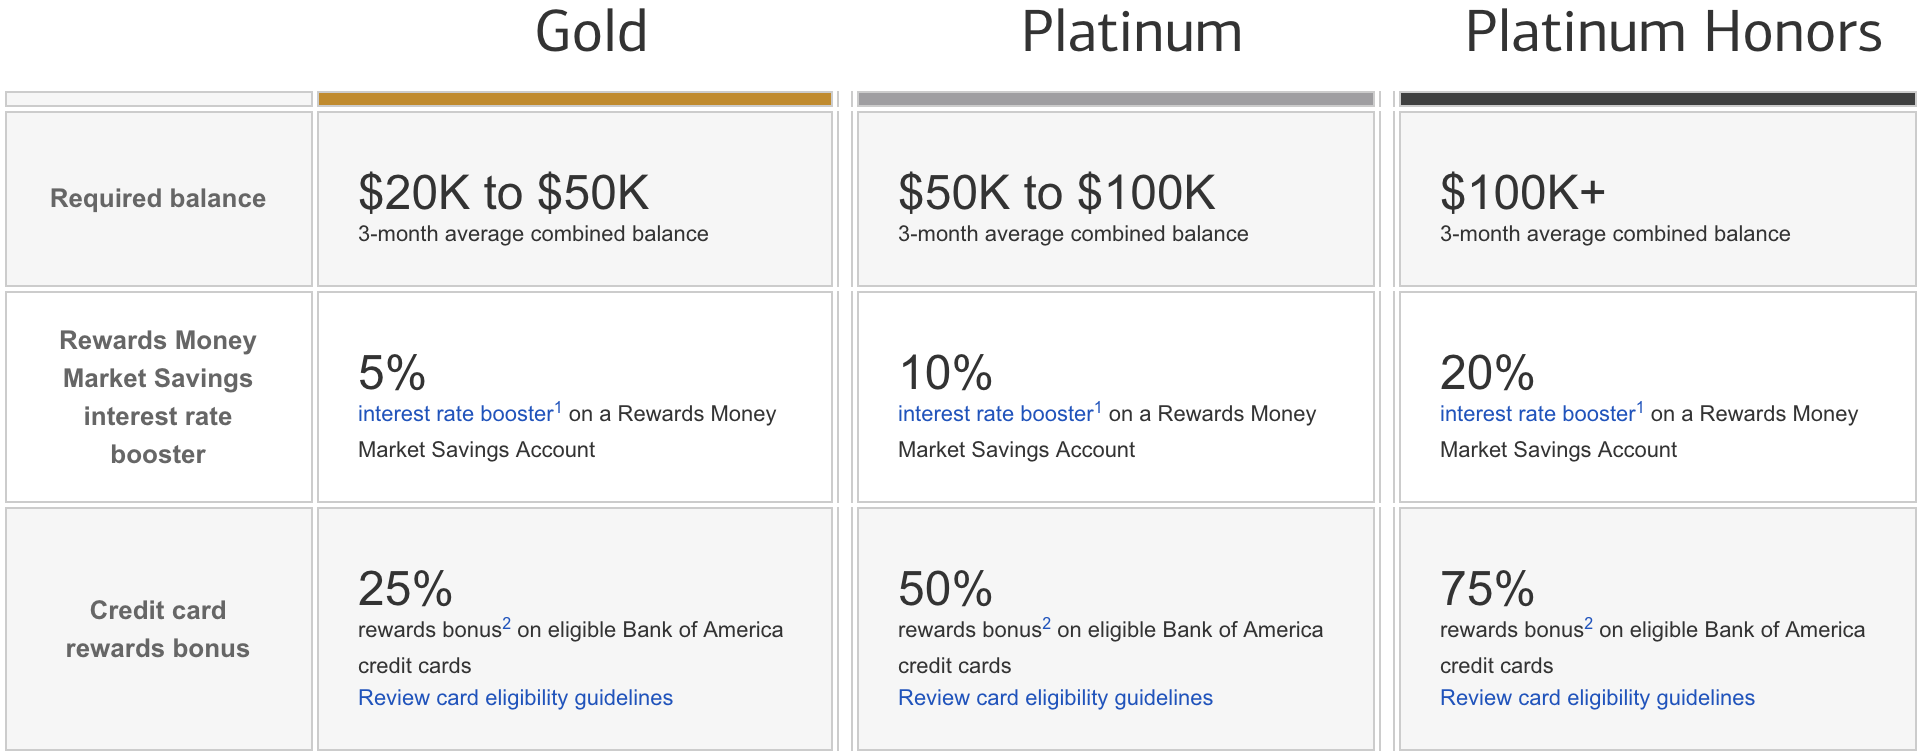 Bank of America Preferred Rewards Program Details